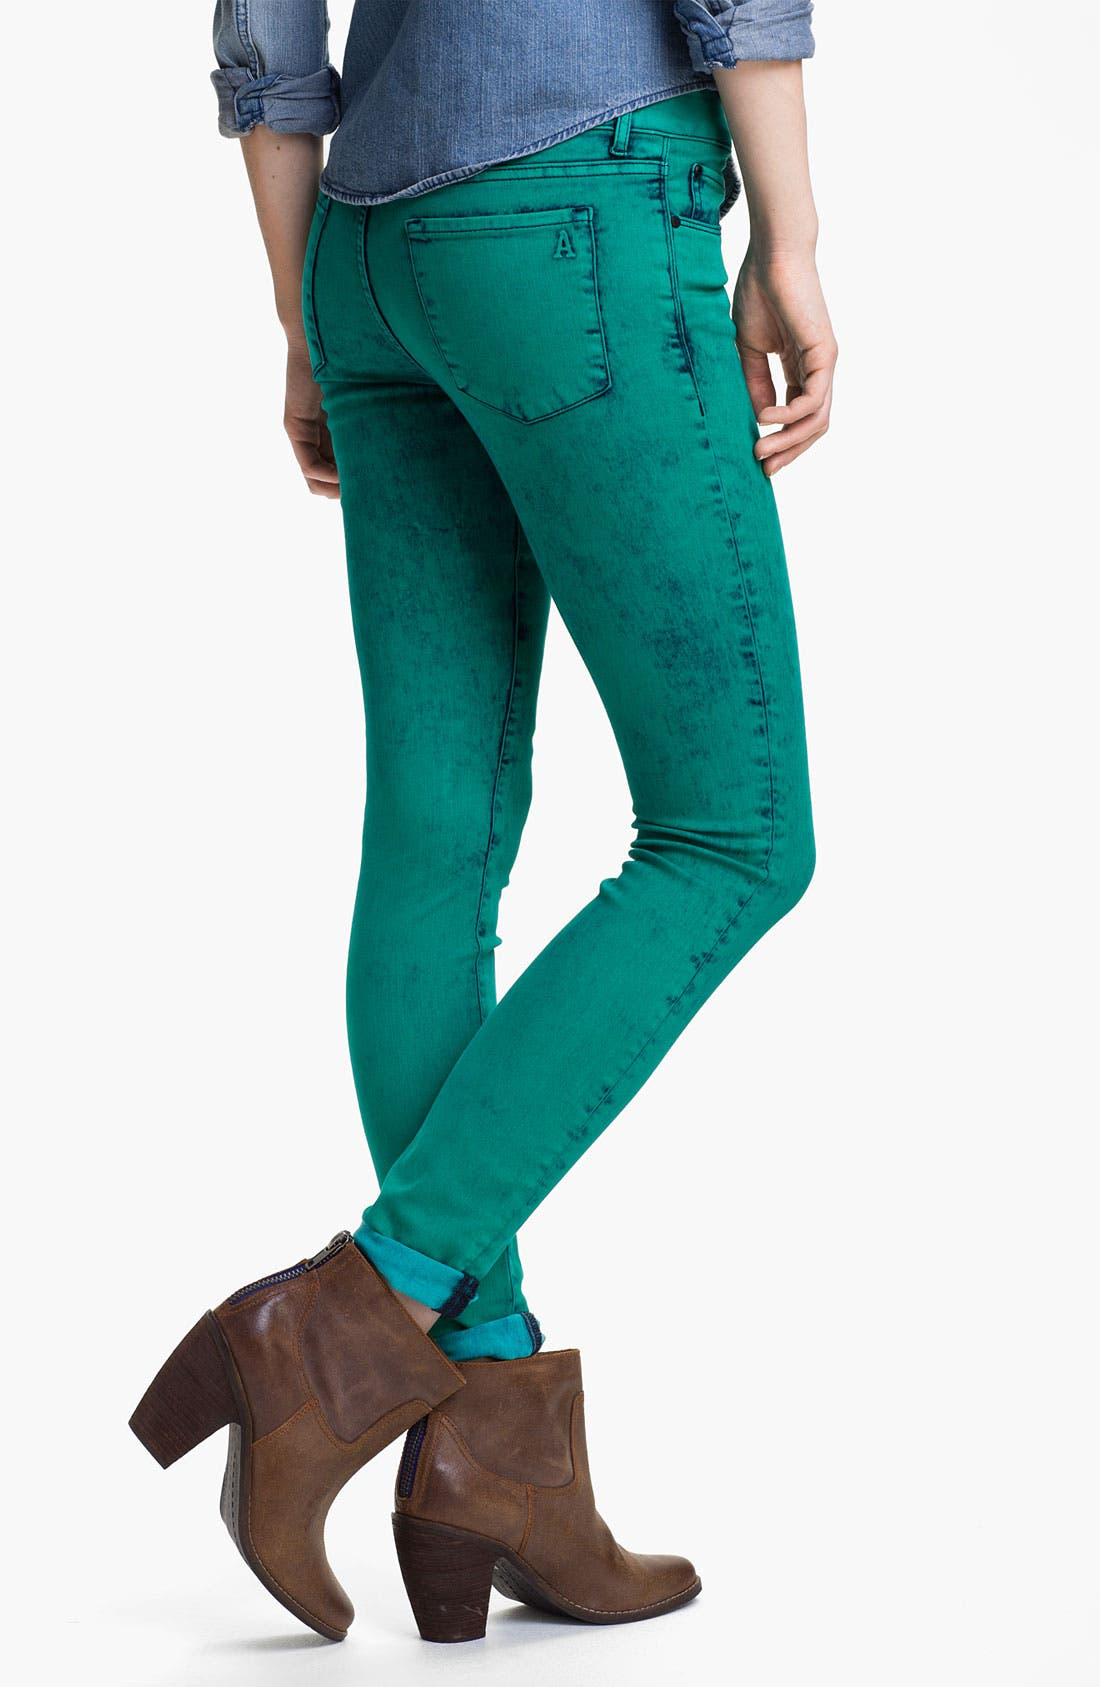 Alternate Image 1 Selected - Articles of Society Acid Wash Skinny Jeans (Juniors)